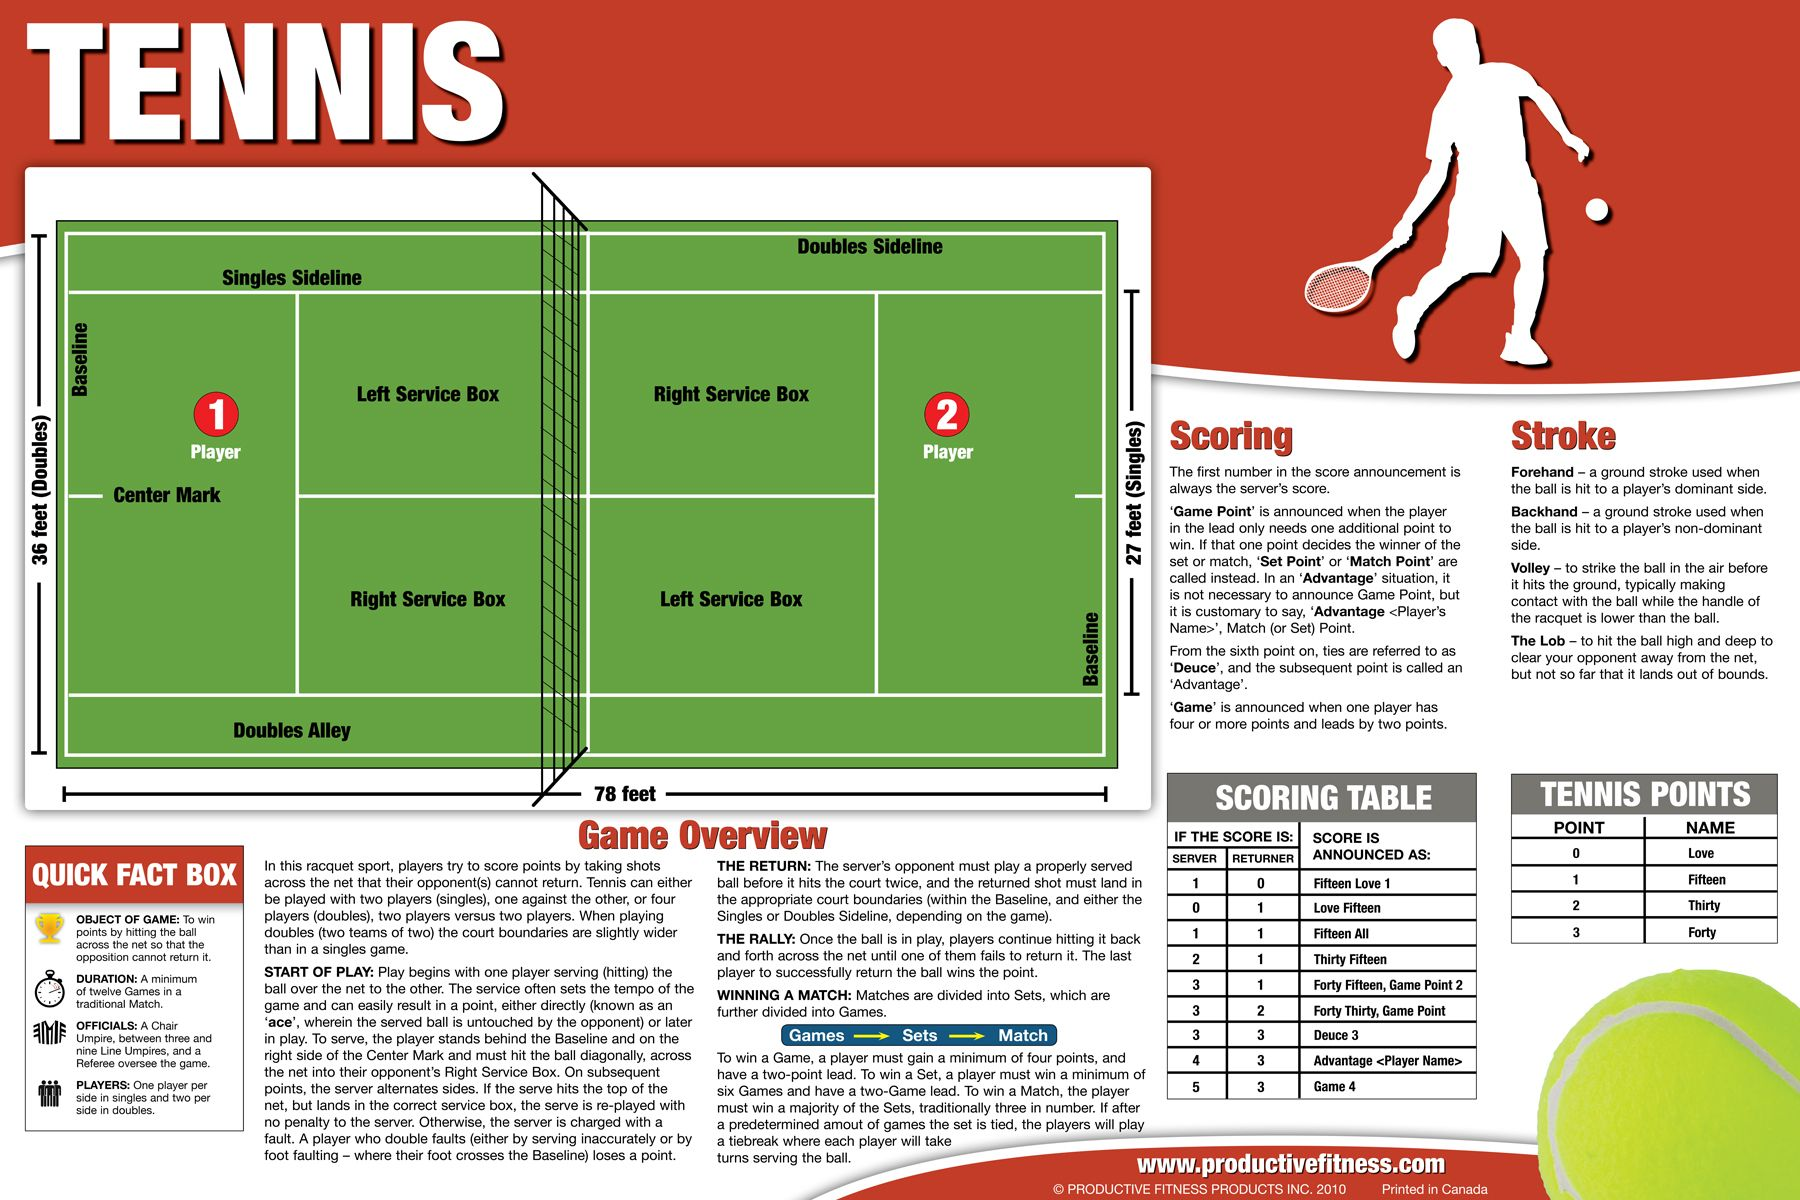 19.95 Our tennis overview poster is perfect to gain an